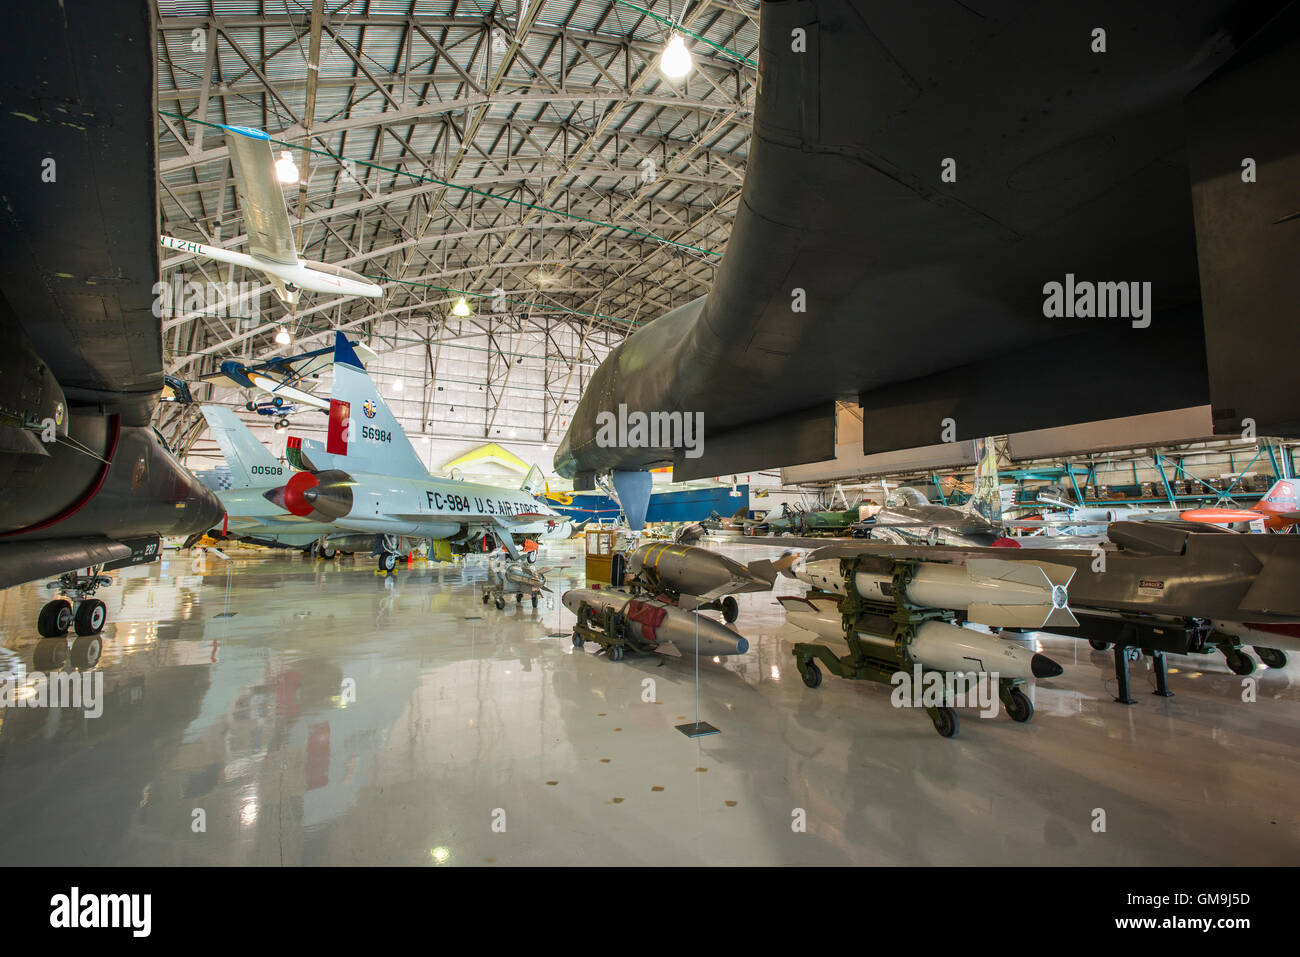 Bombs under the wings of a B-1A Lancer, Wings over the Rockies Air and Space Museum, Denver, Colorado. - Stock Image